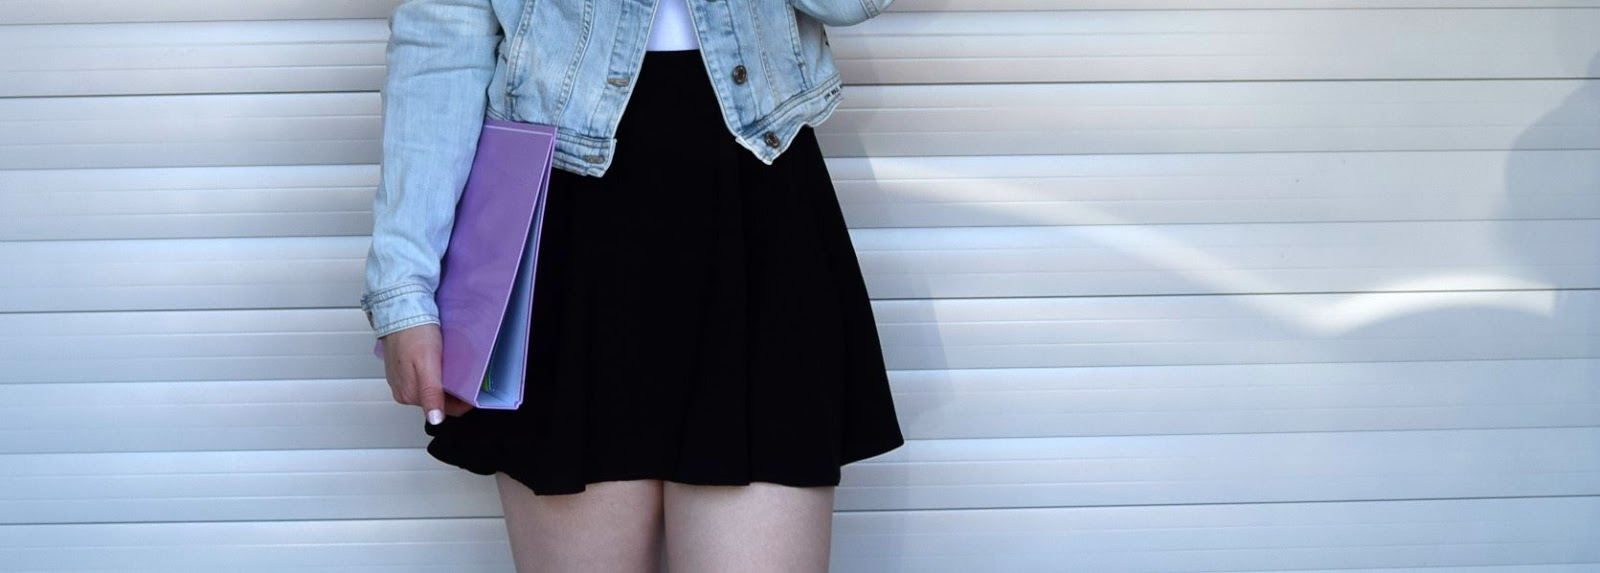 Lower body shot showing the black skater skirt, white top and blue light washed denim jacket. The model is also wearing a white nail polish and is carrying a pastel purple binder